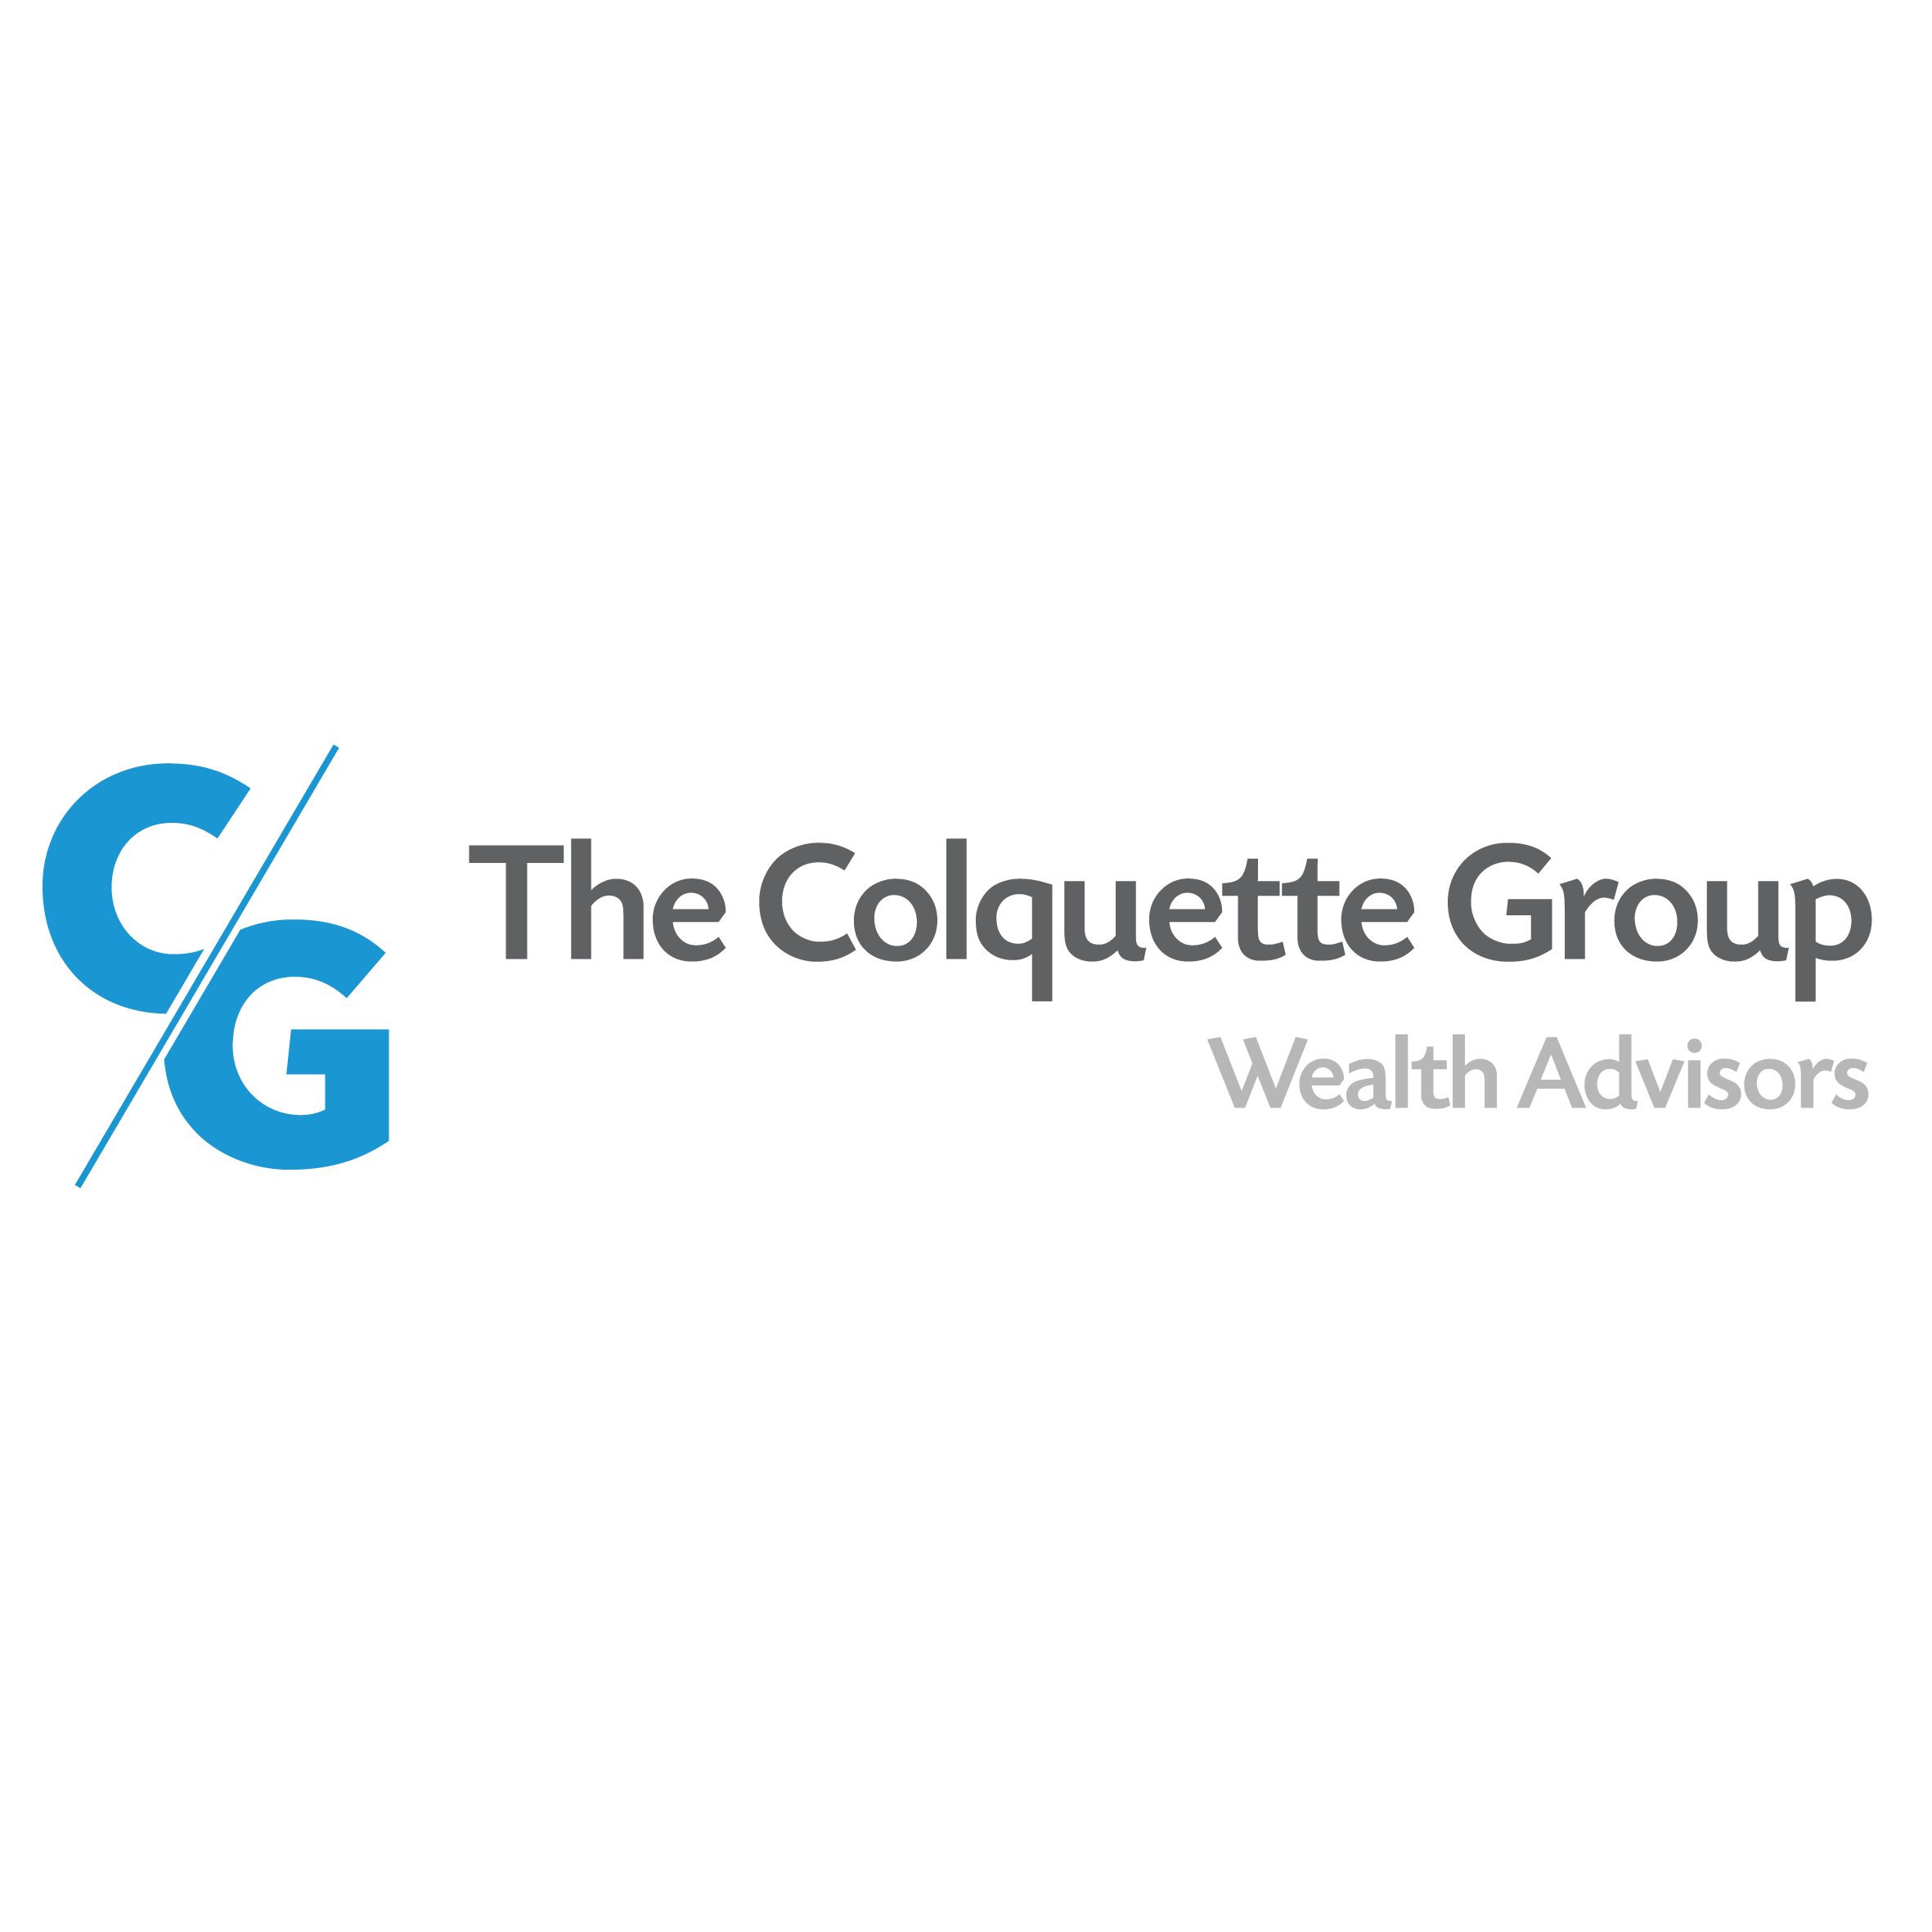 The Colquette Group Wealth Advisors